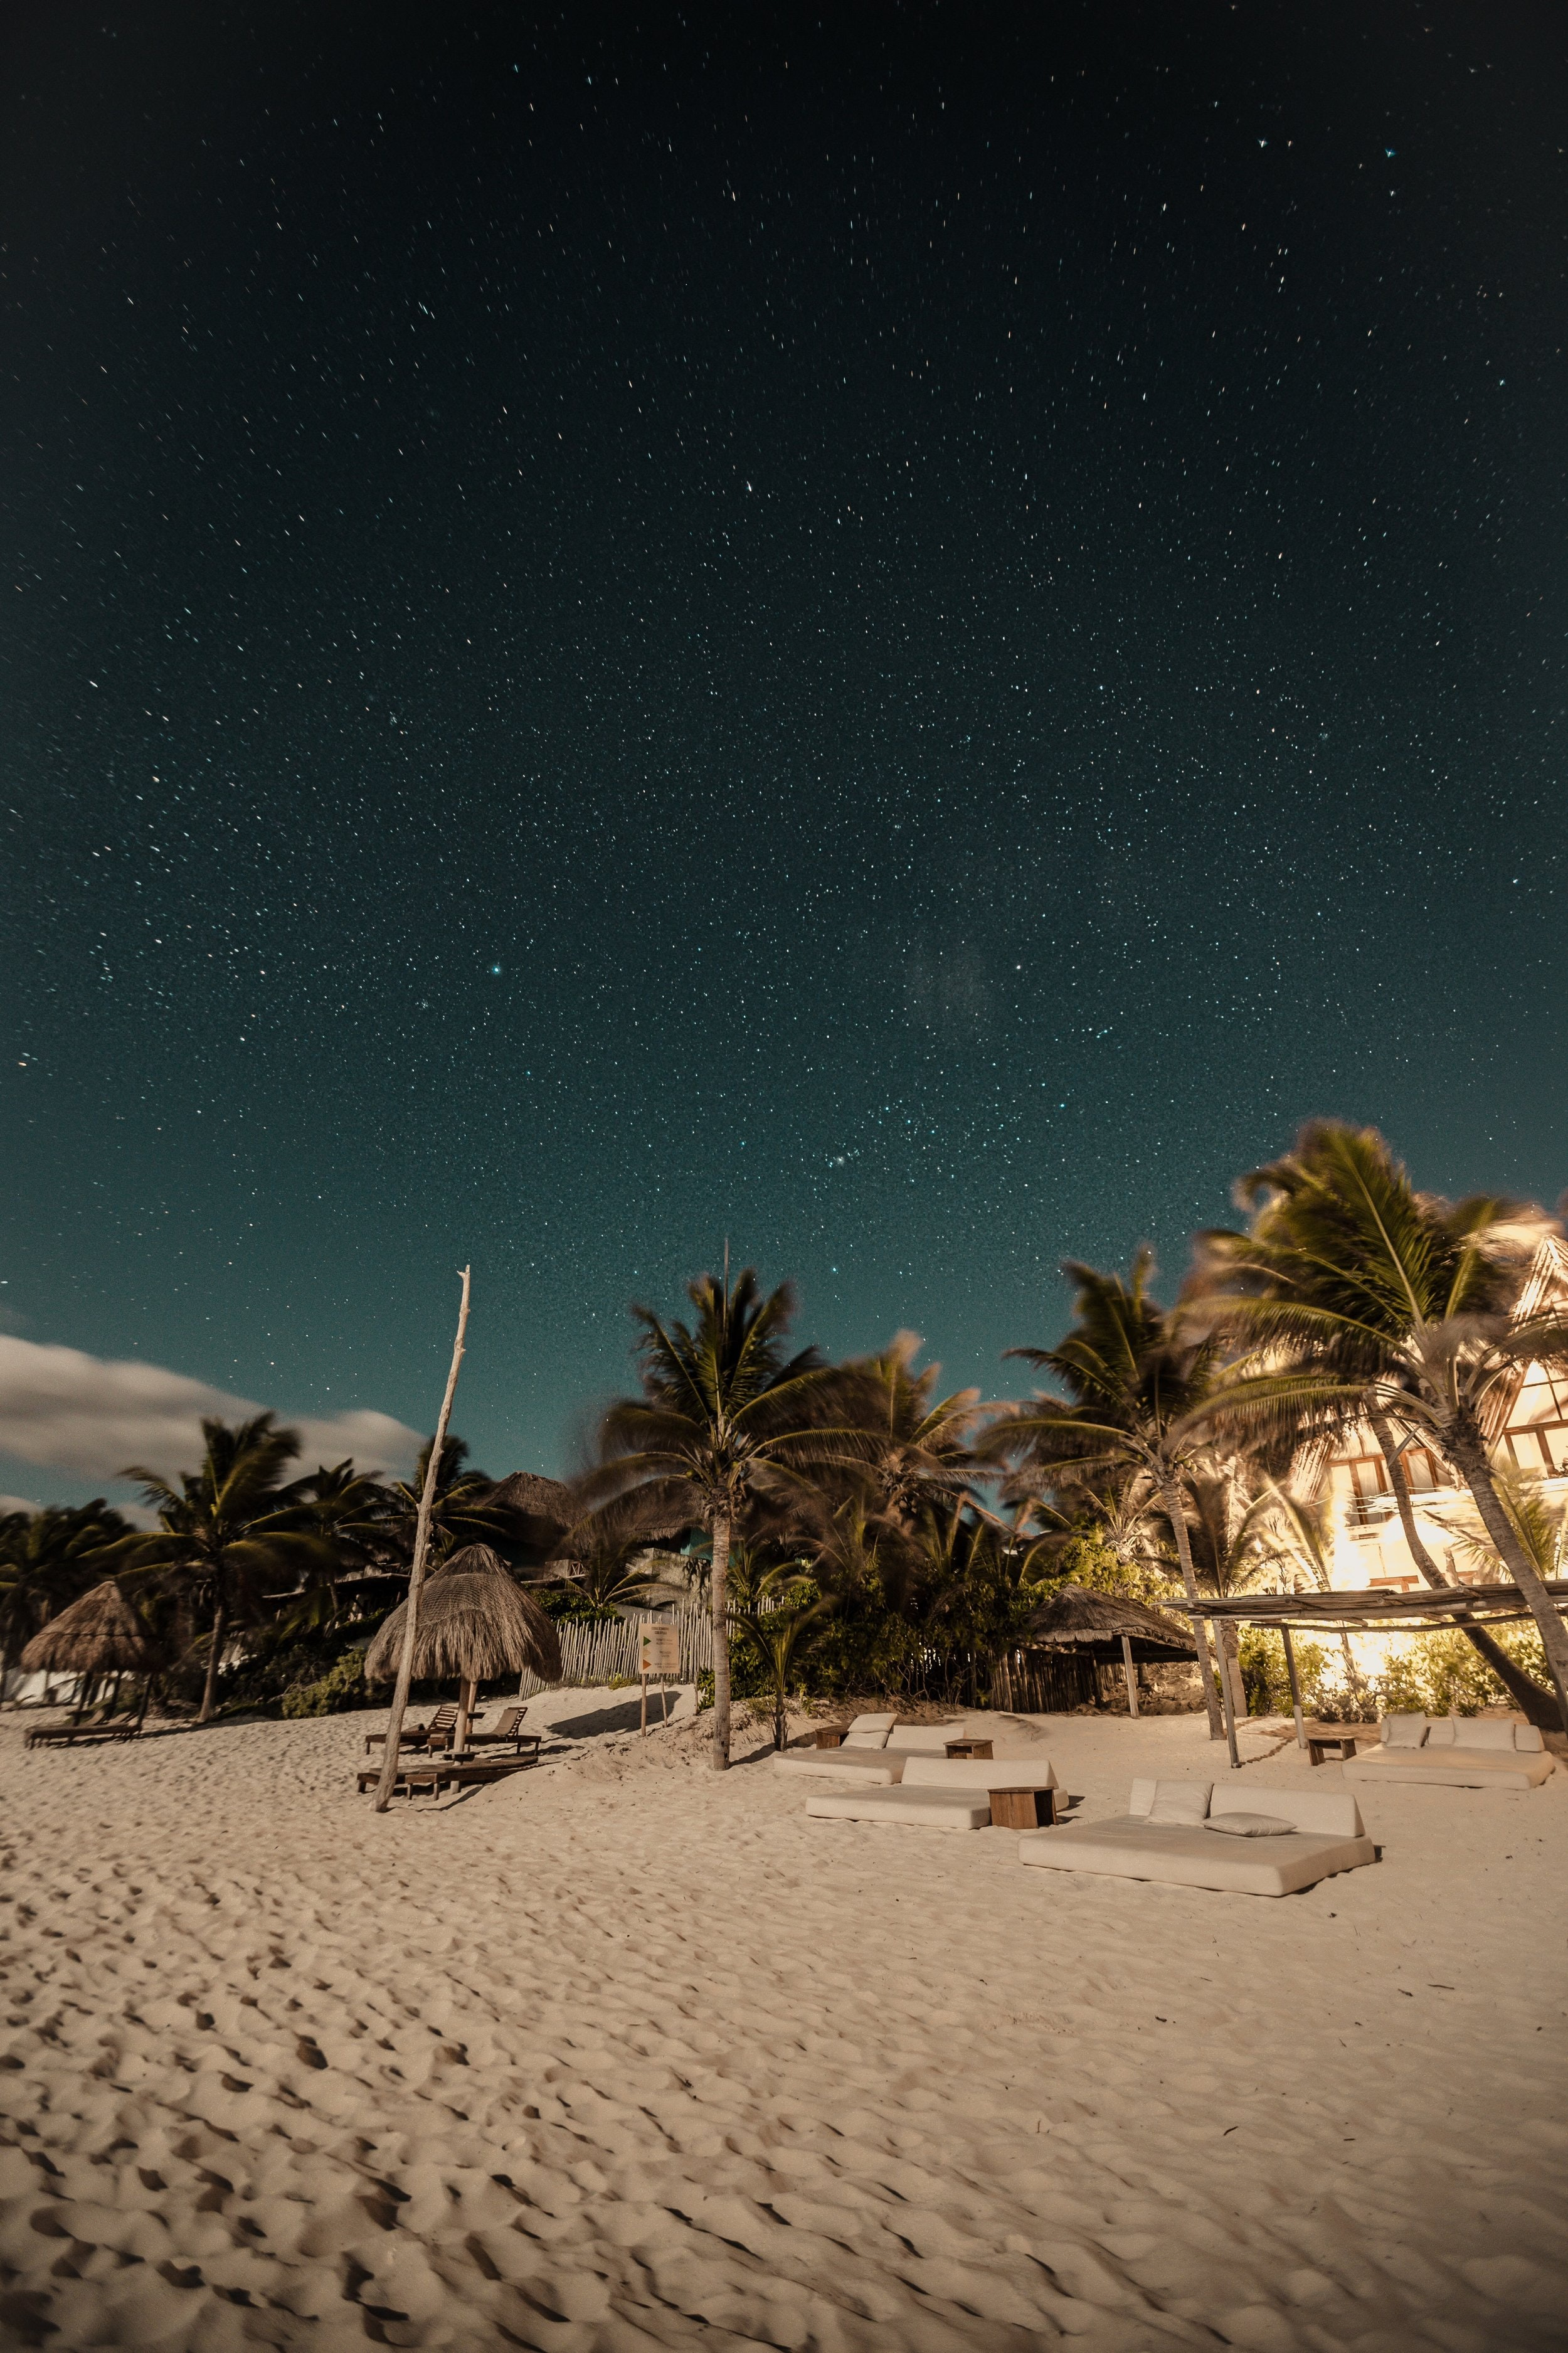 seashore and palm trees under starry sky